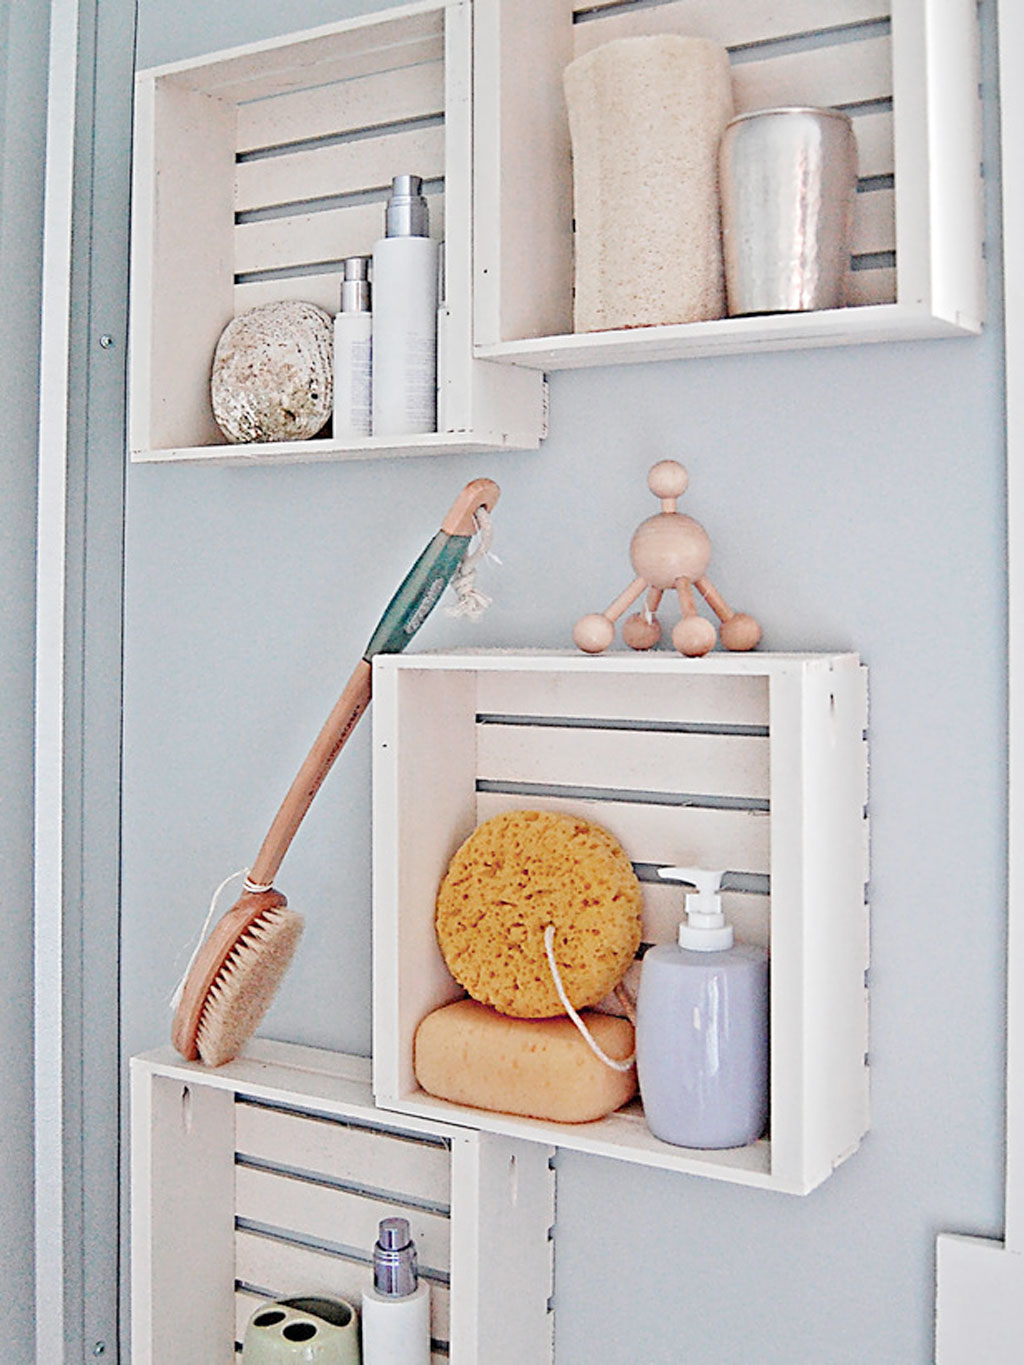 Small Bathroom Towel Storage Ideas Best Hanging - Wooden towel storage for small bathroom ideas